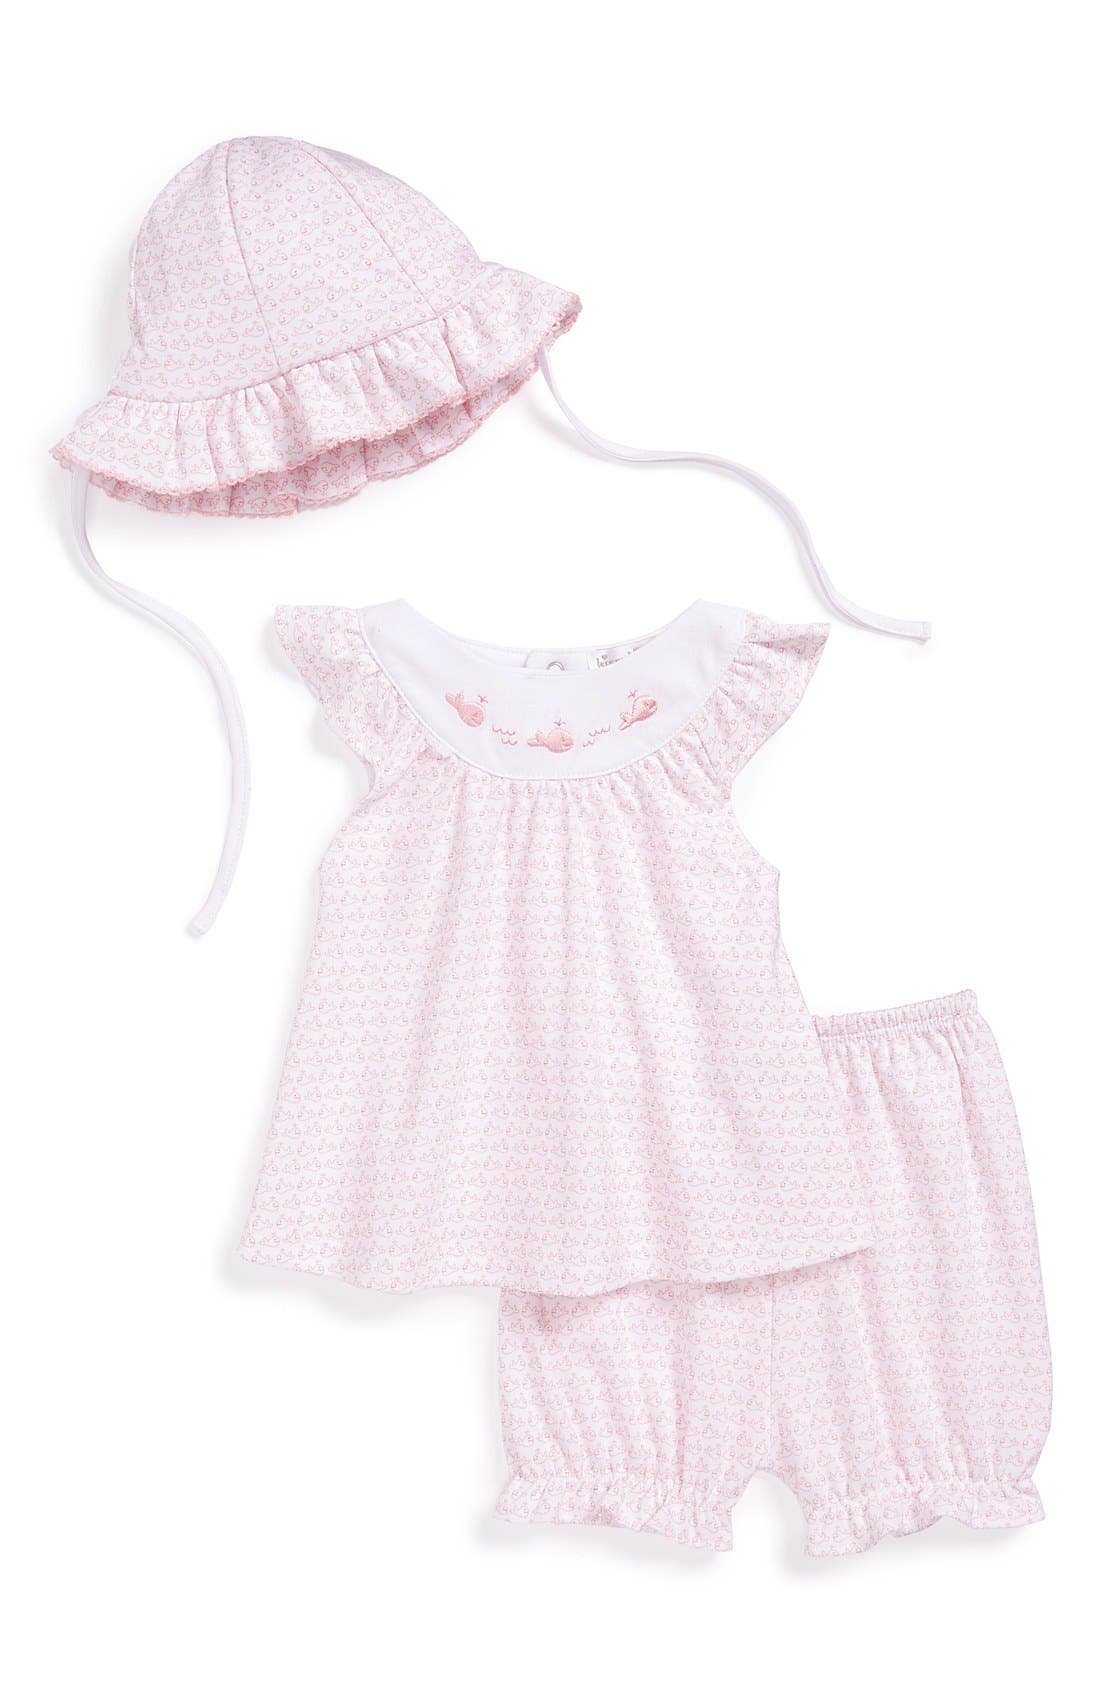 Alternate Image 1 Selected - Kissy Kissy 'Wandering Whales' Pima Cotton Sunsuit & Hat (Baby Girls)